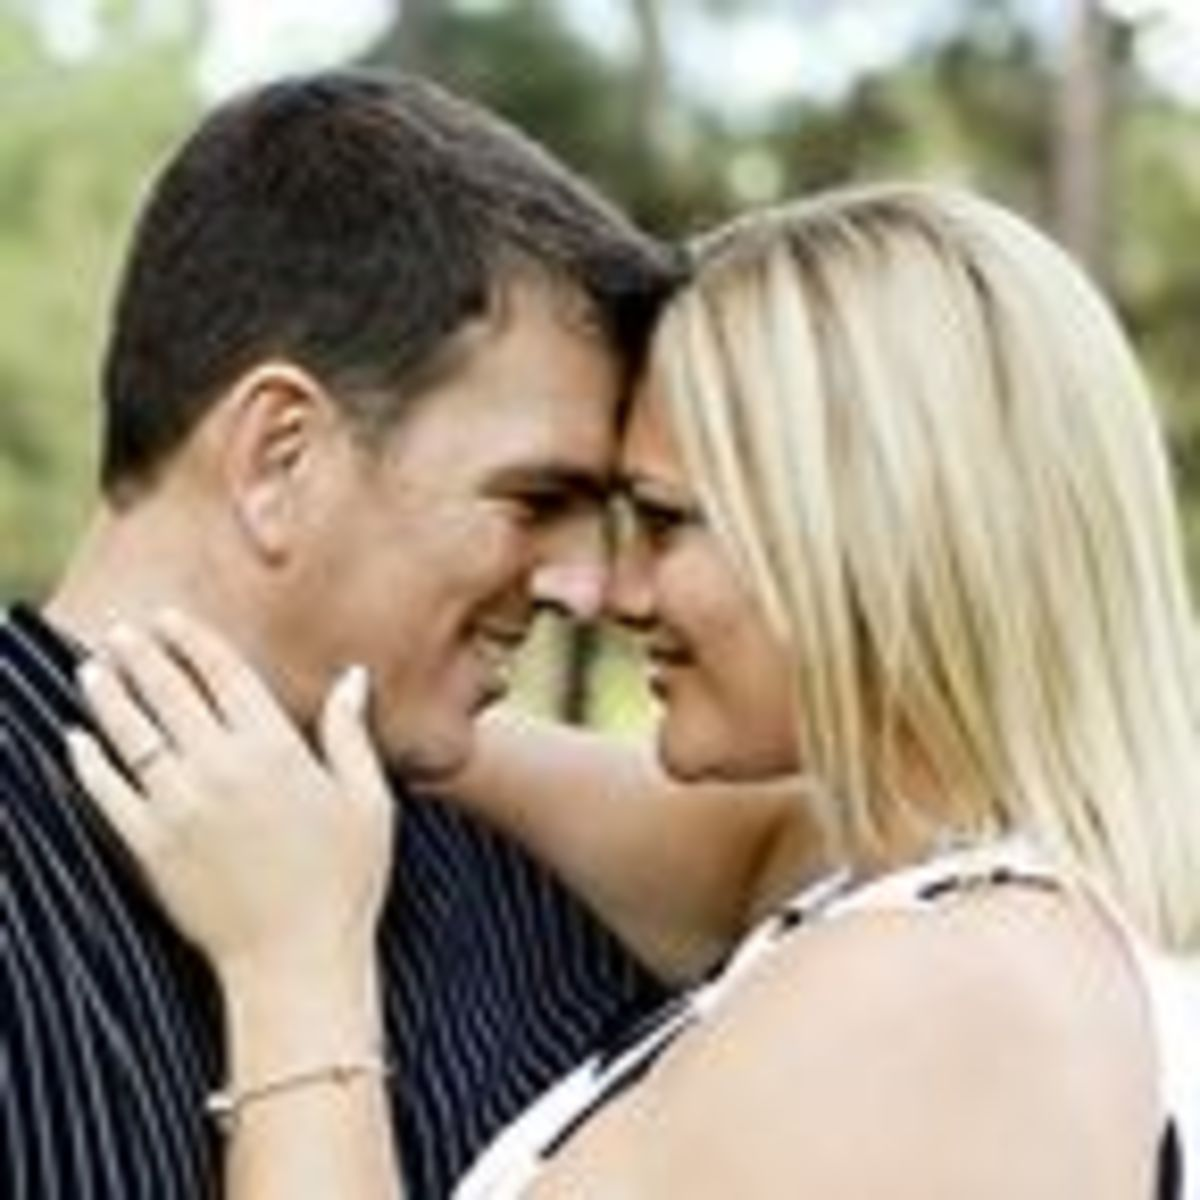 What Happens When a Psychopath Falls in Love | Psychology Today